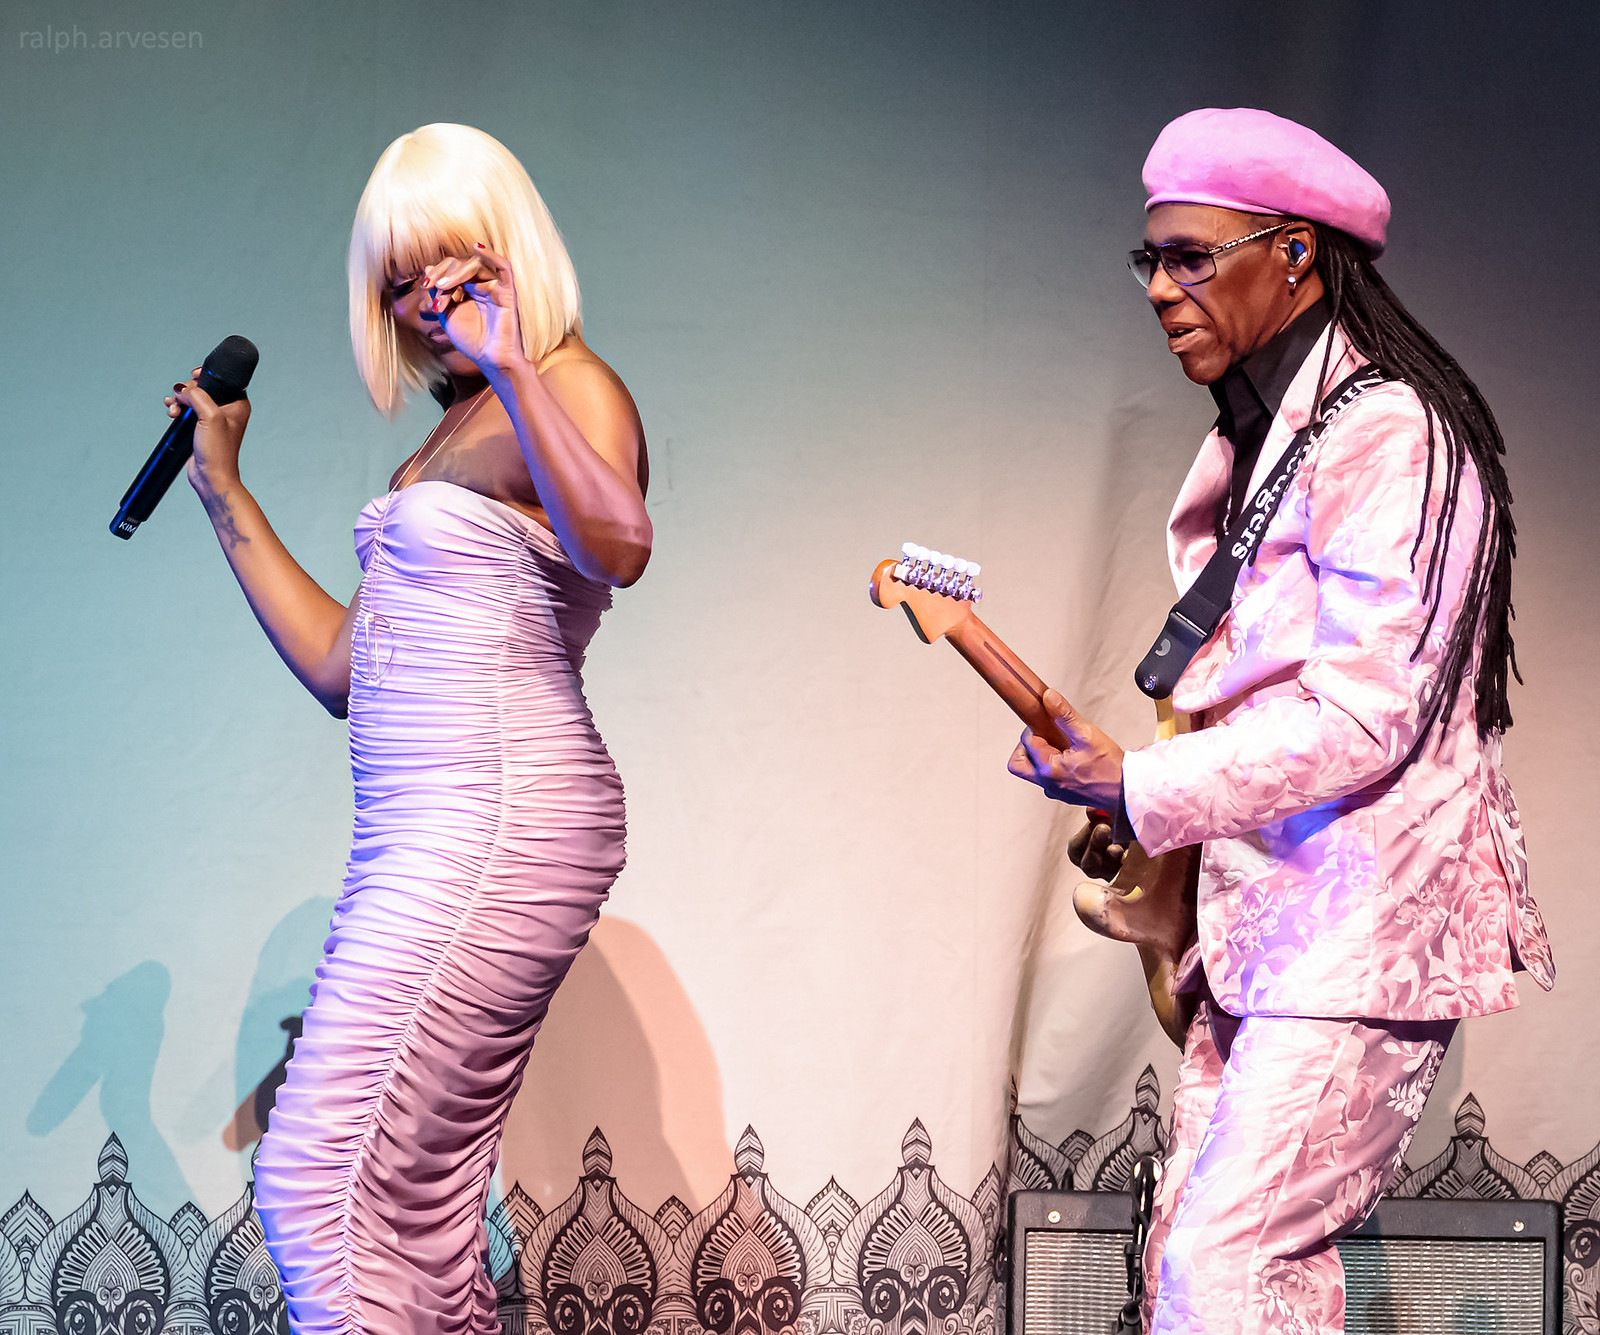 Nile Rodgers & CHIC | Texas Review | Ralph Arvesen